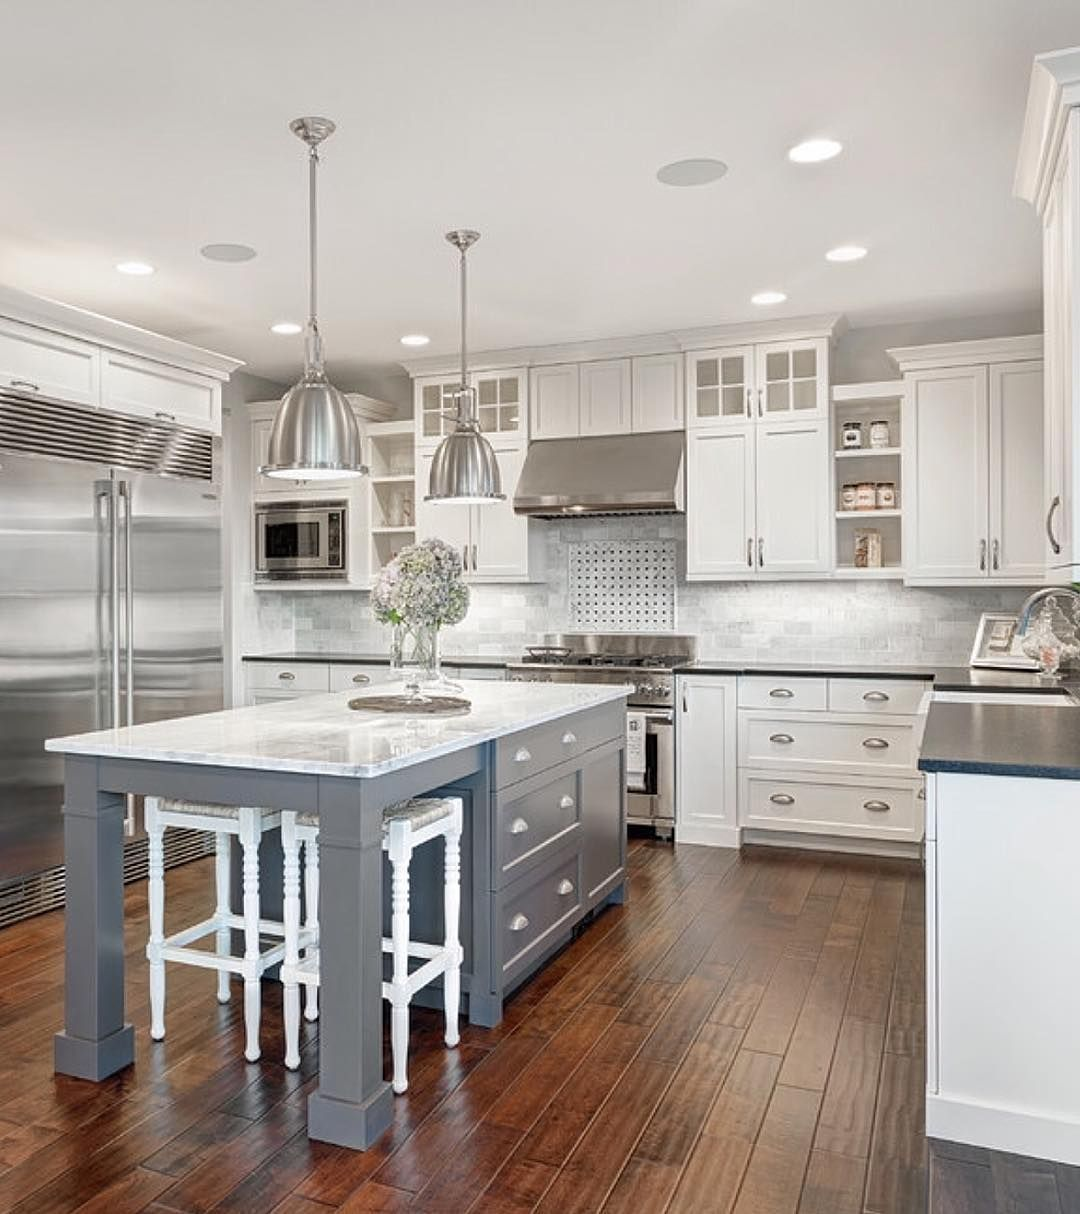 Not Sure Who Designed This Kitchen But They Sure Did A